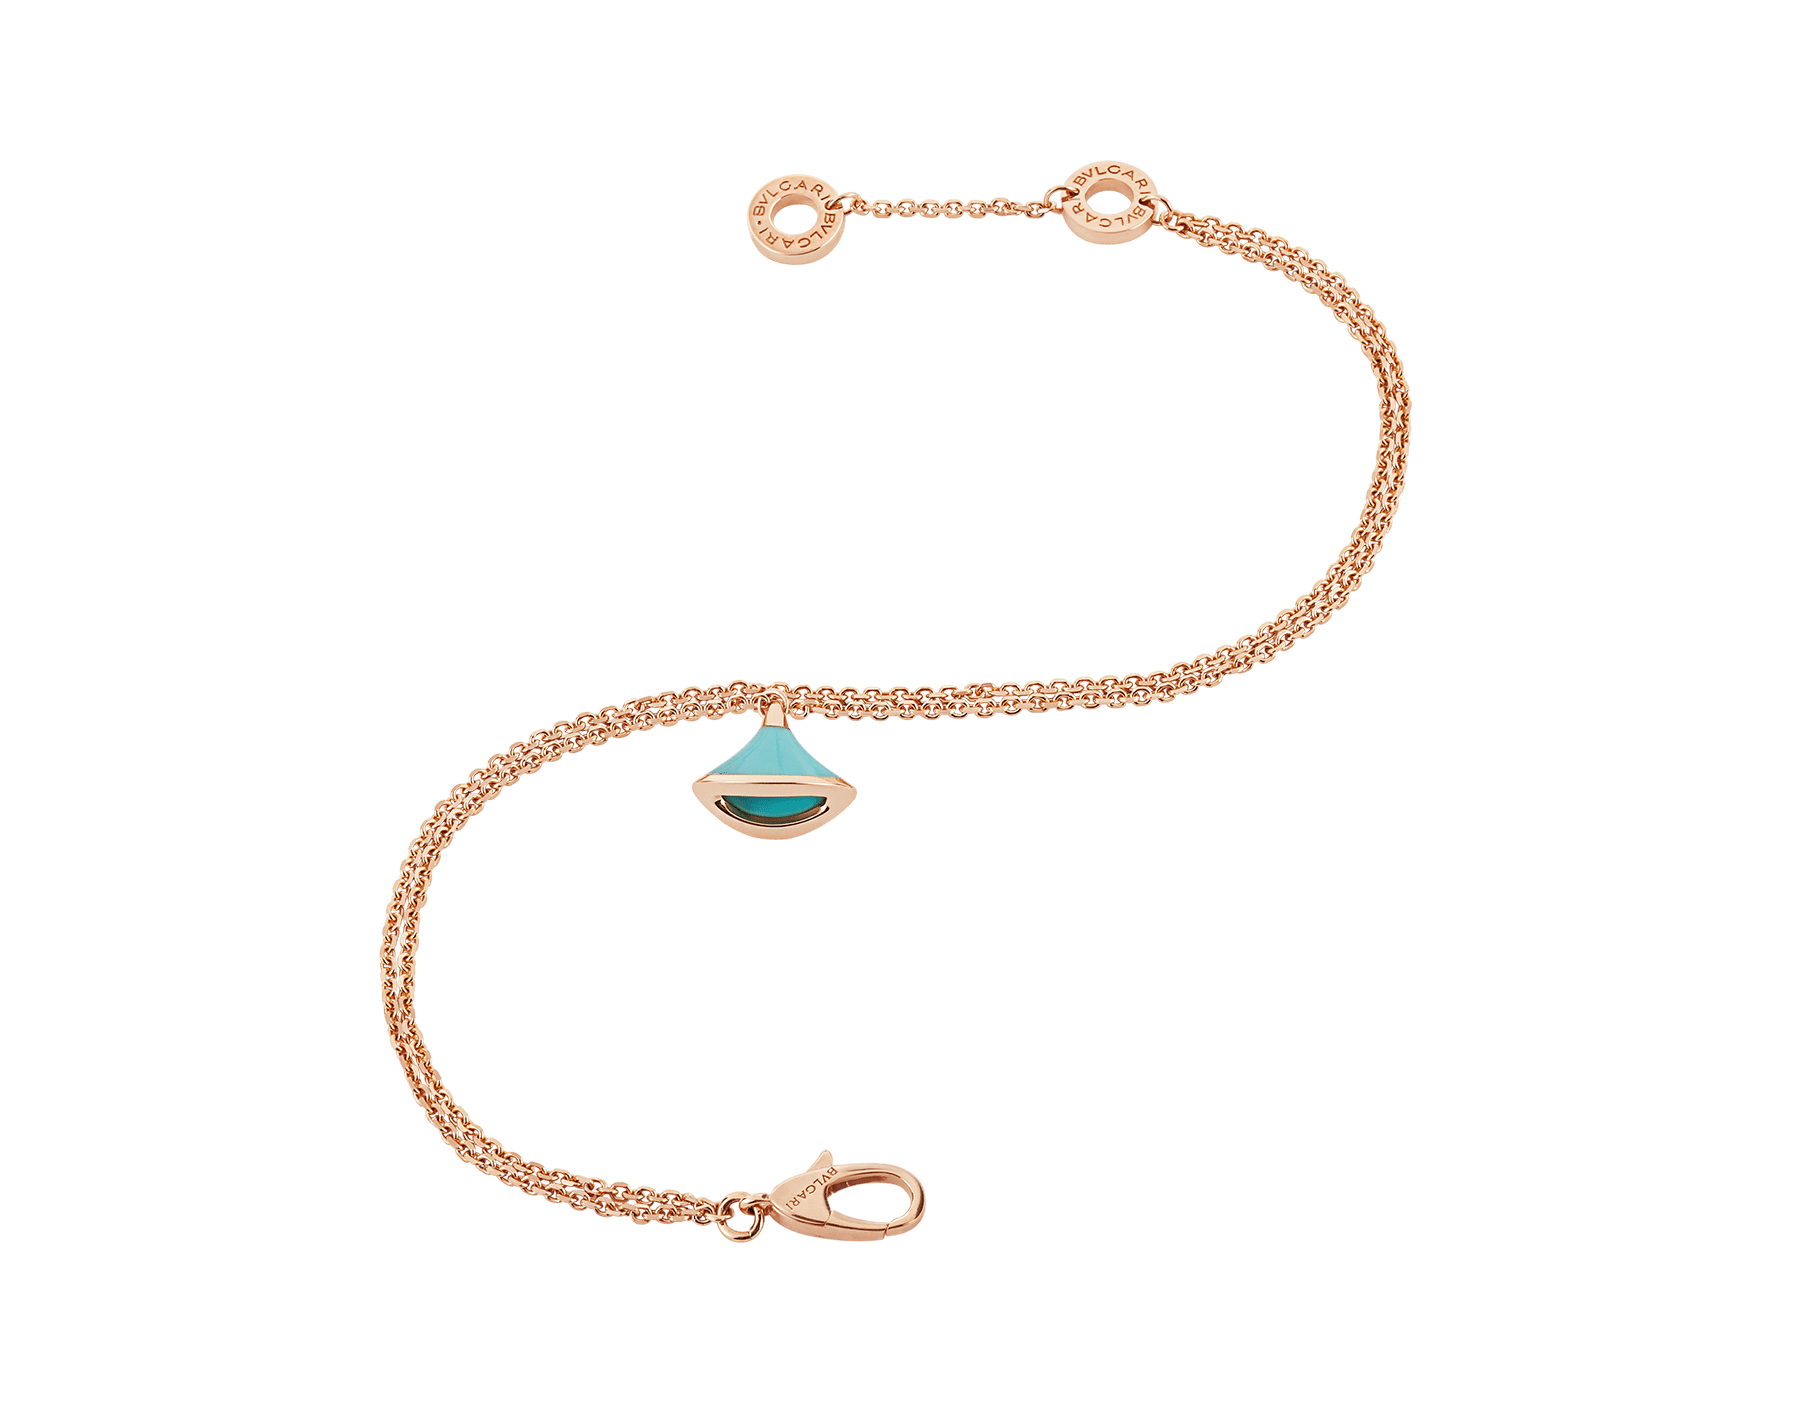 DIVAS' DREAM bracelet in 18 kt rose gold with pendant set with torquoise. BR857195 image 2